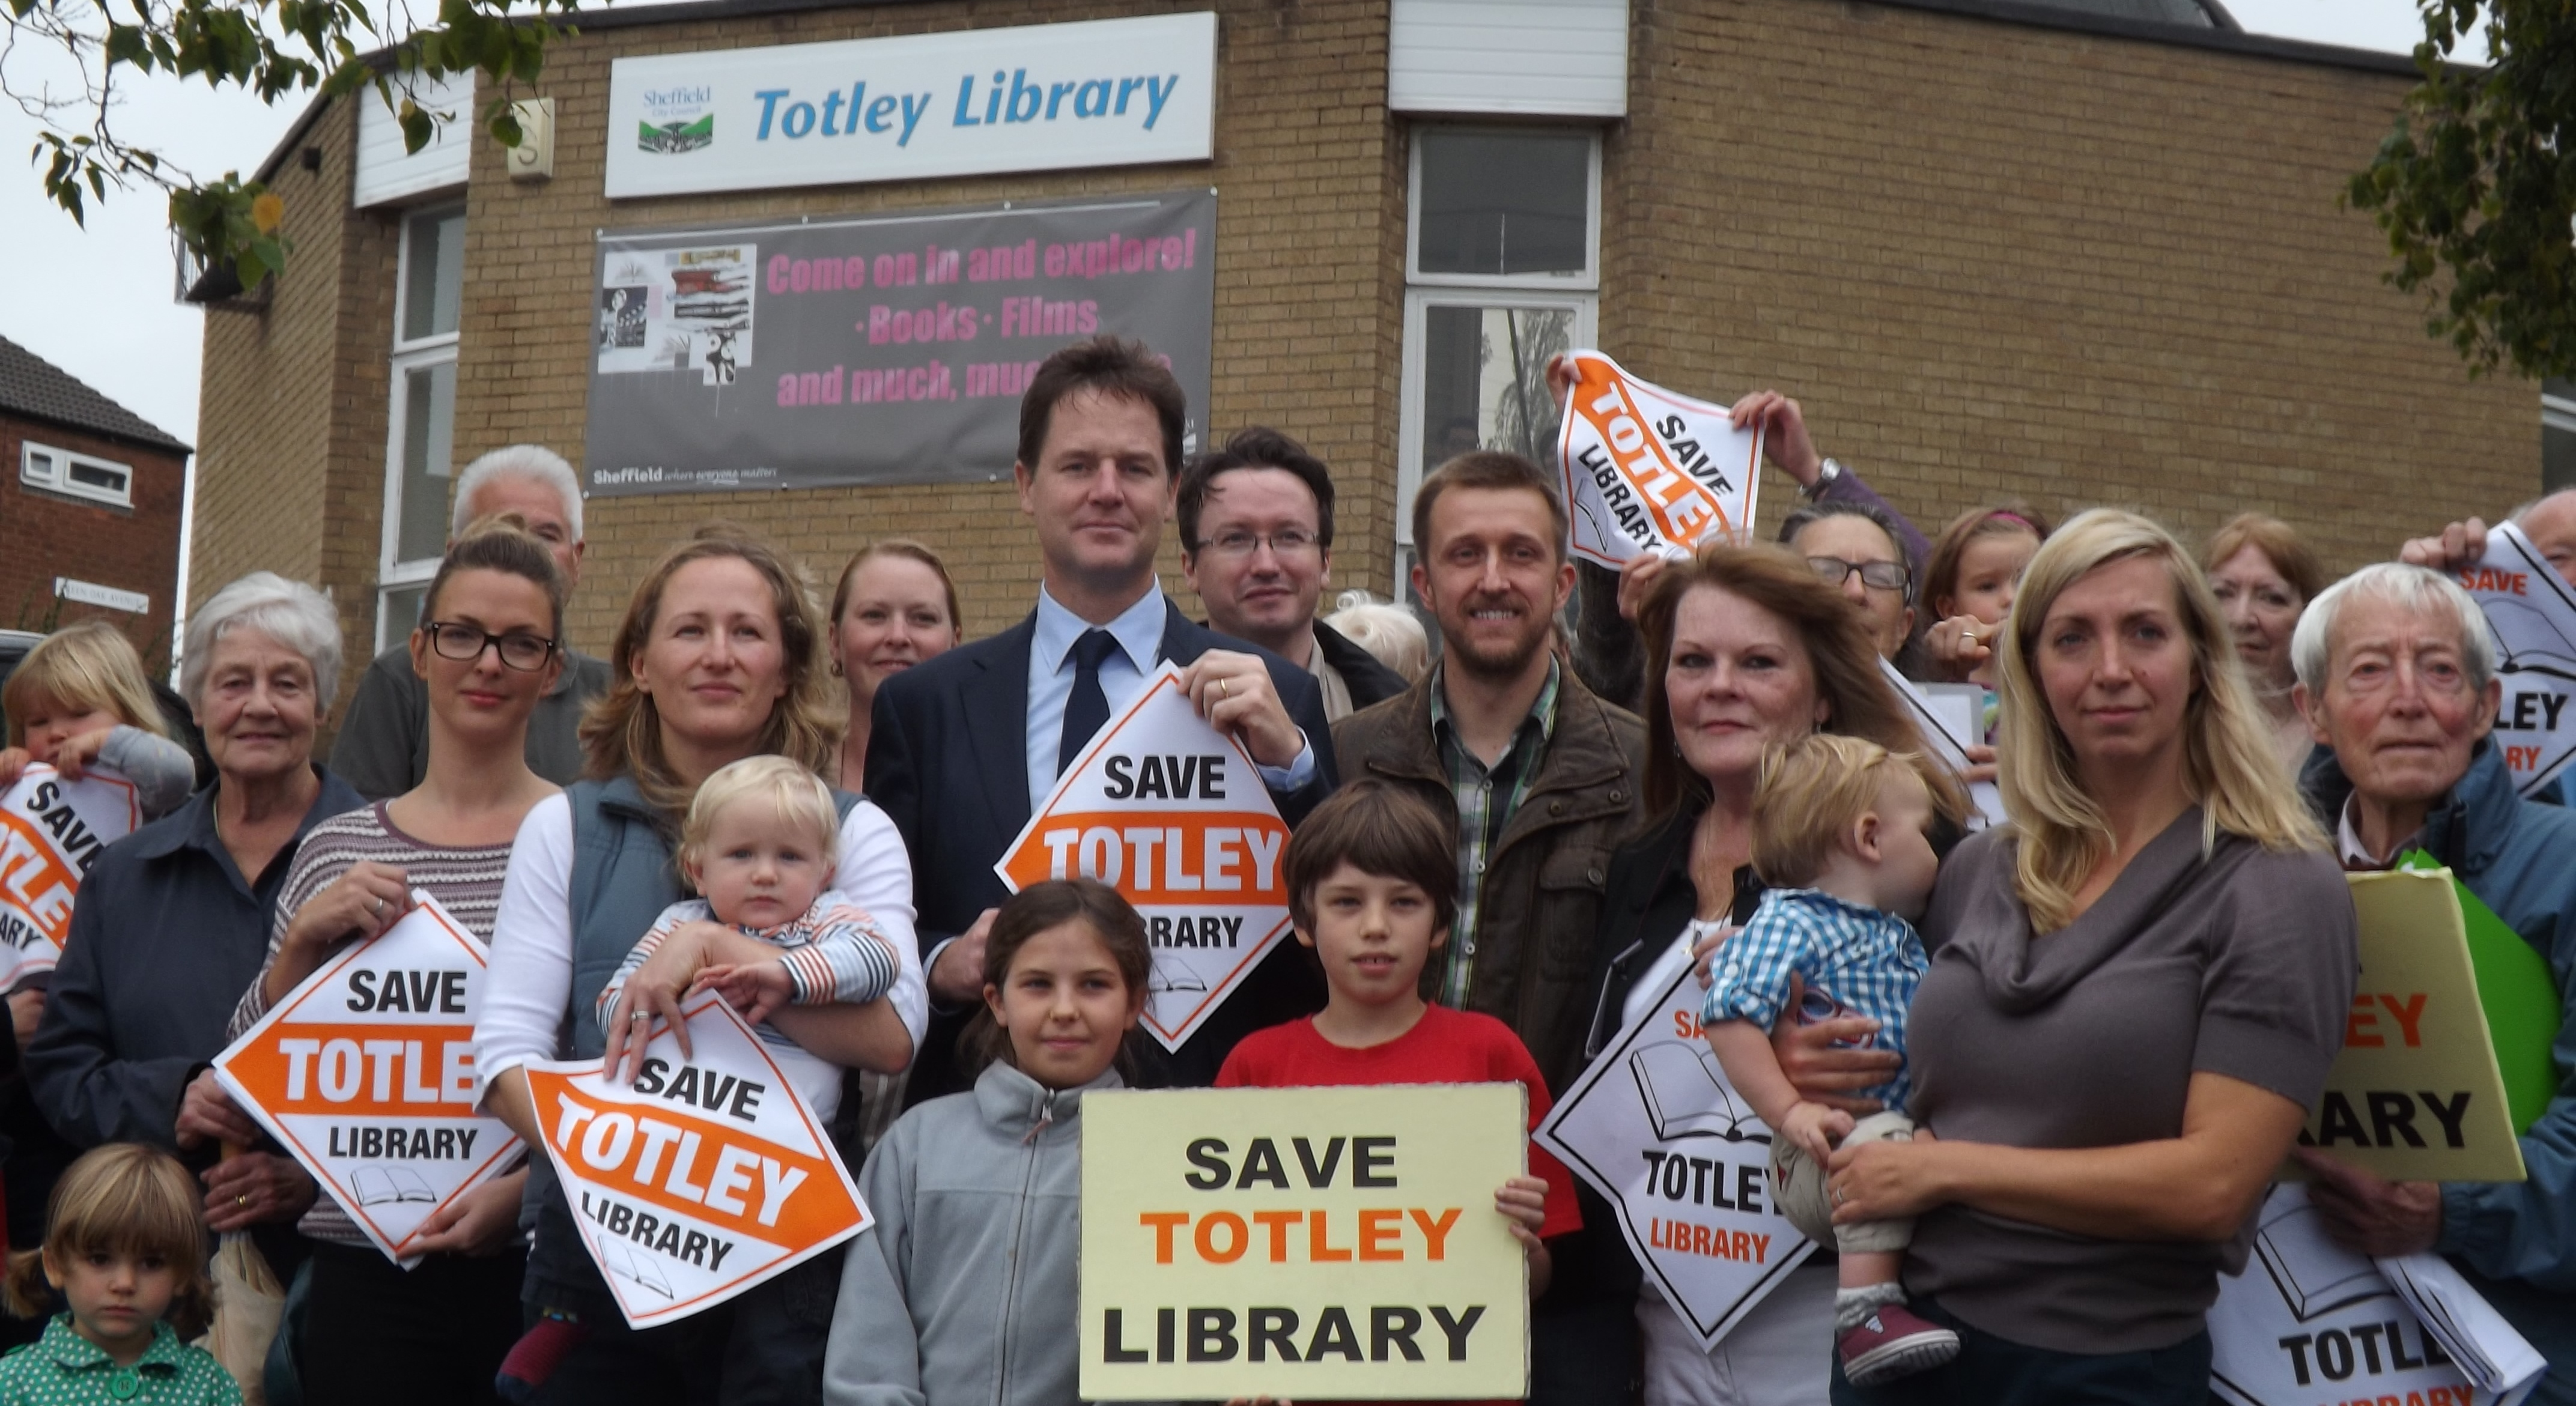 key_Nick_library_campaigners_totley_-_Copy.jpg